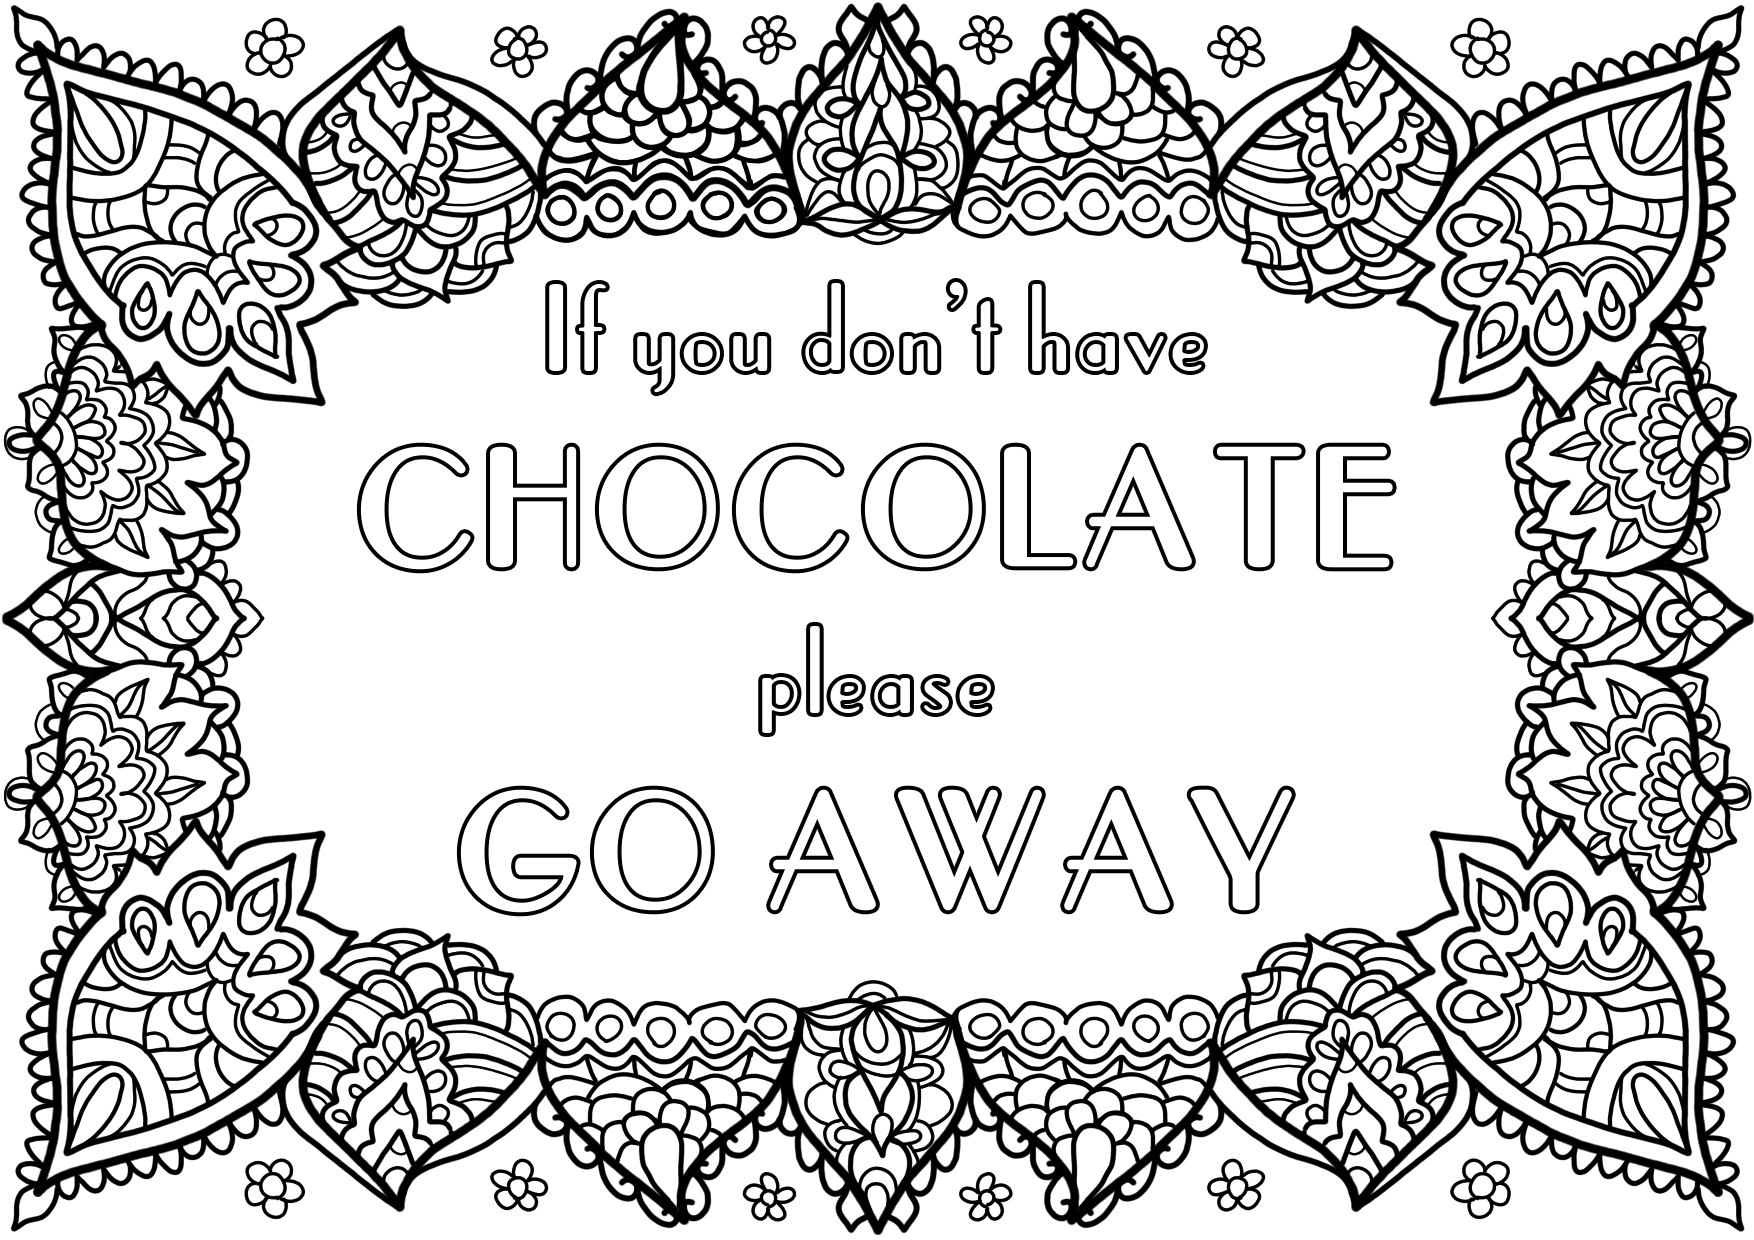 Free Colouring Page - Chocolate! by WelshPixie on DeviantArt